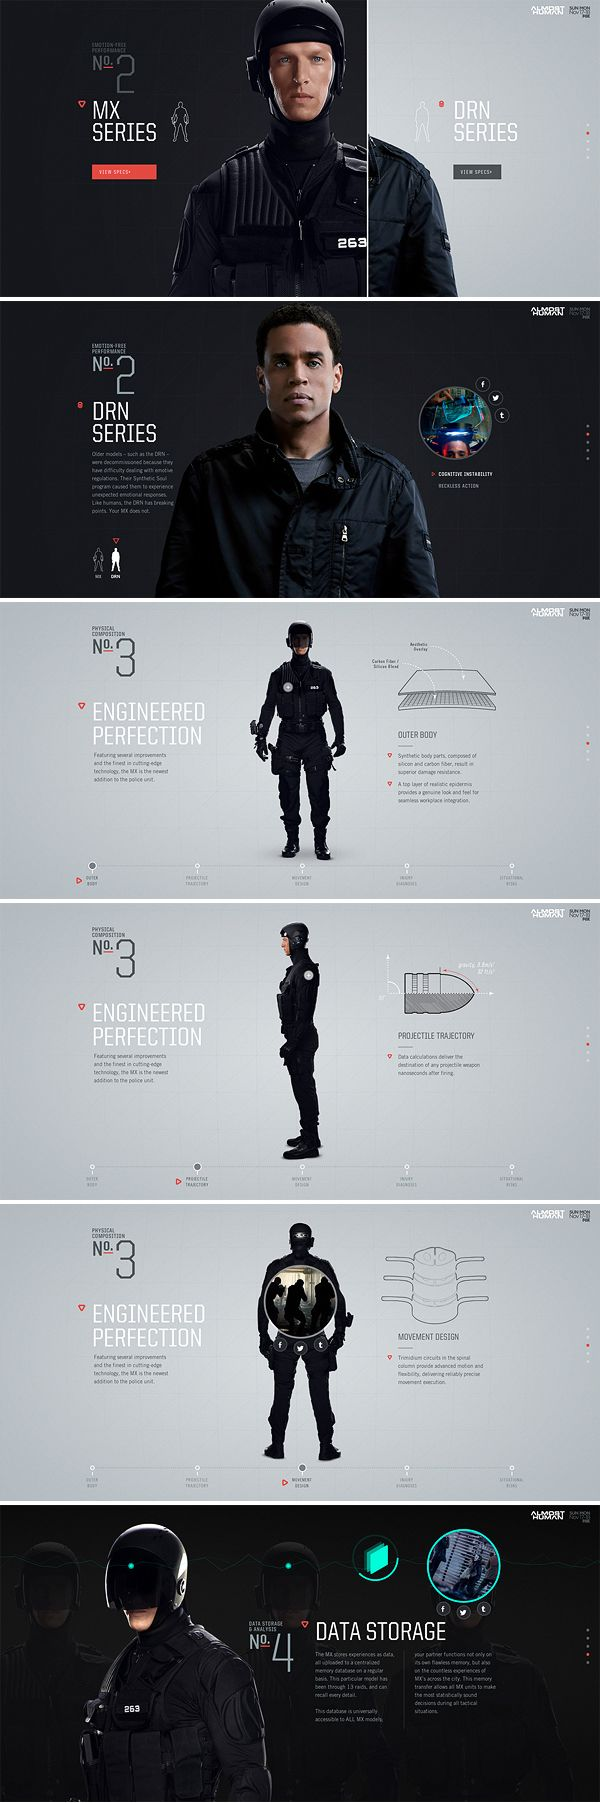 Almost Human: Meet Your MX Site by Watson, via Behance